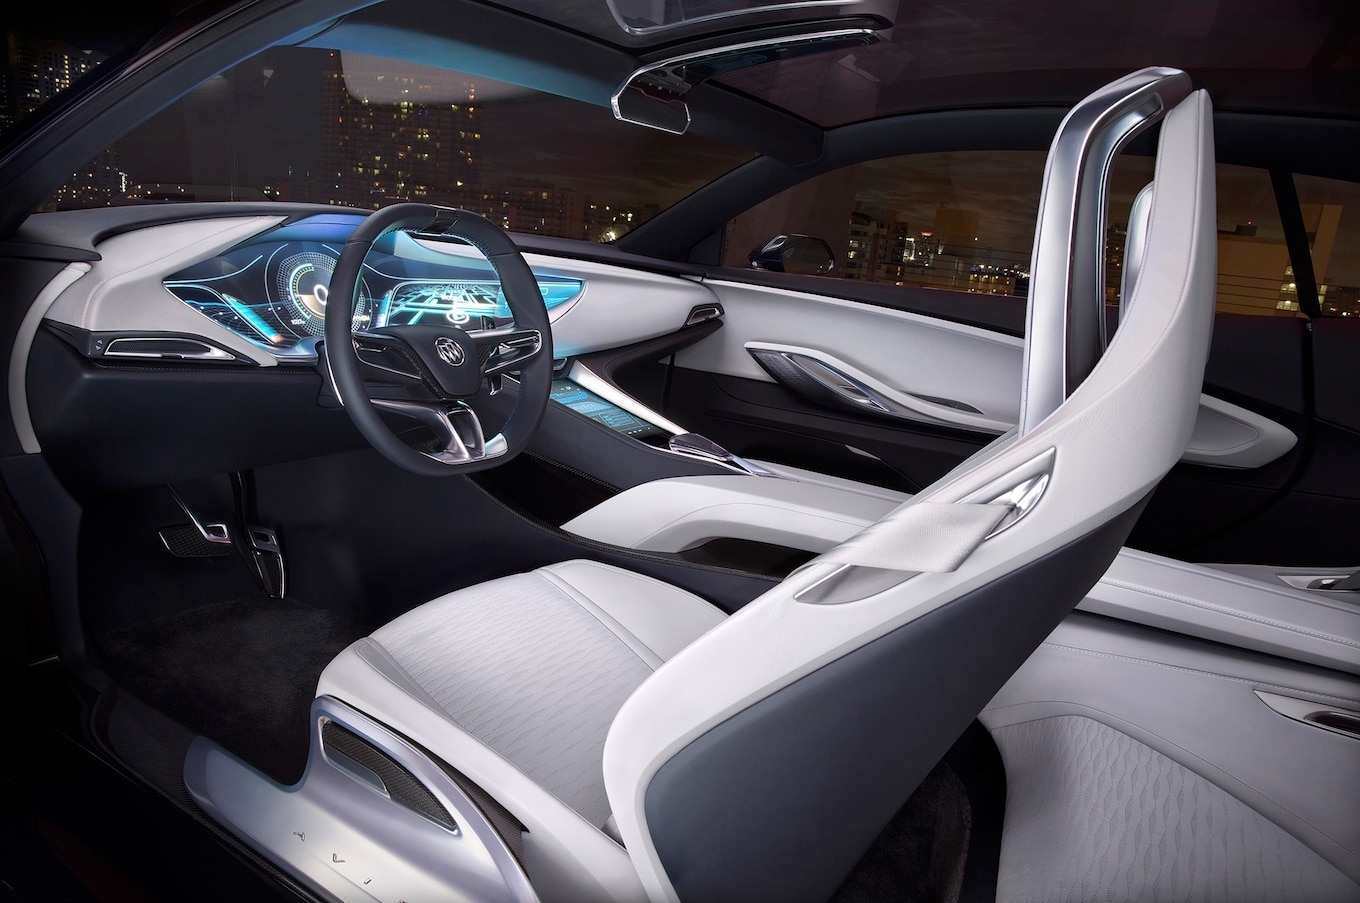 61 New 2019 Buick Avista Wallpaper